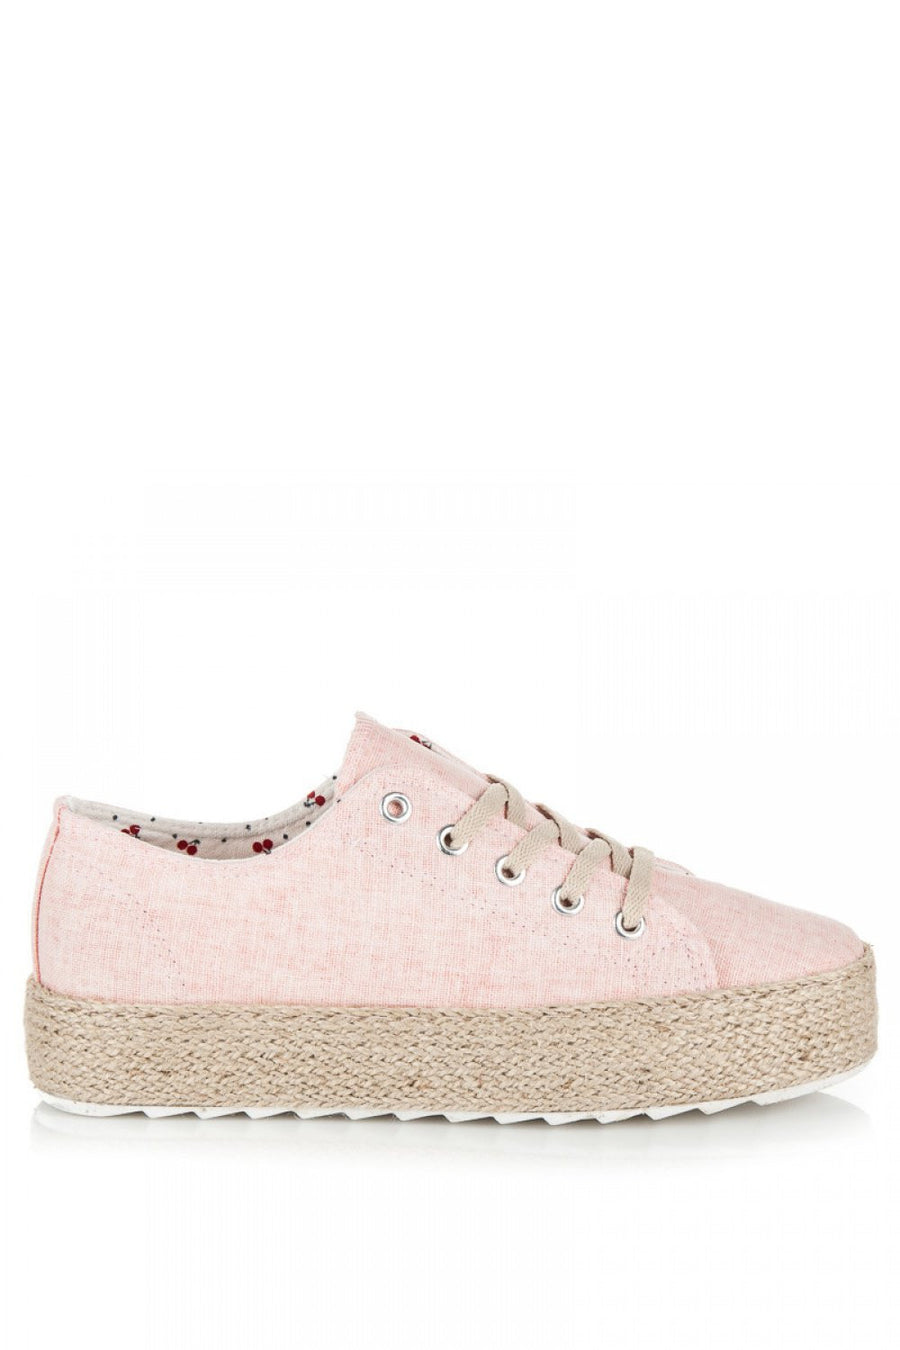 Espadrille 75654 Zoki-Women`s Athletic Shoes, Trainers, Sneakers-Zoki-Très Fancy